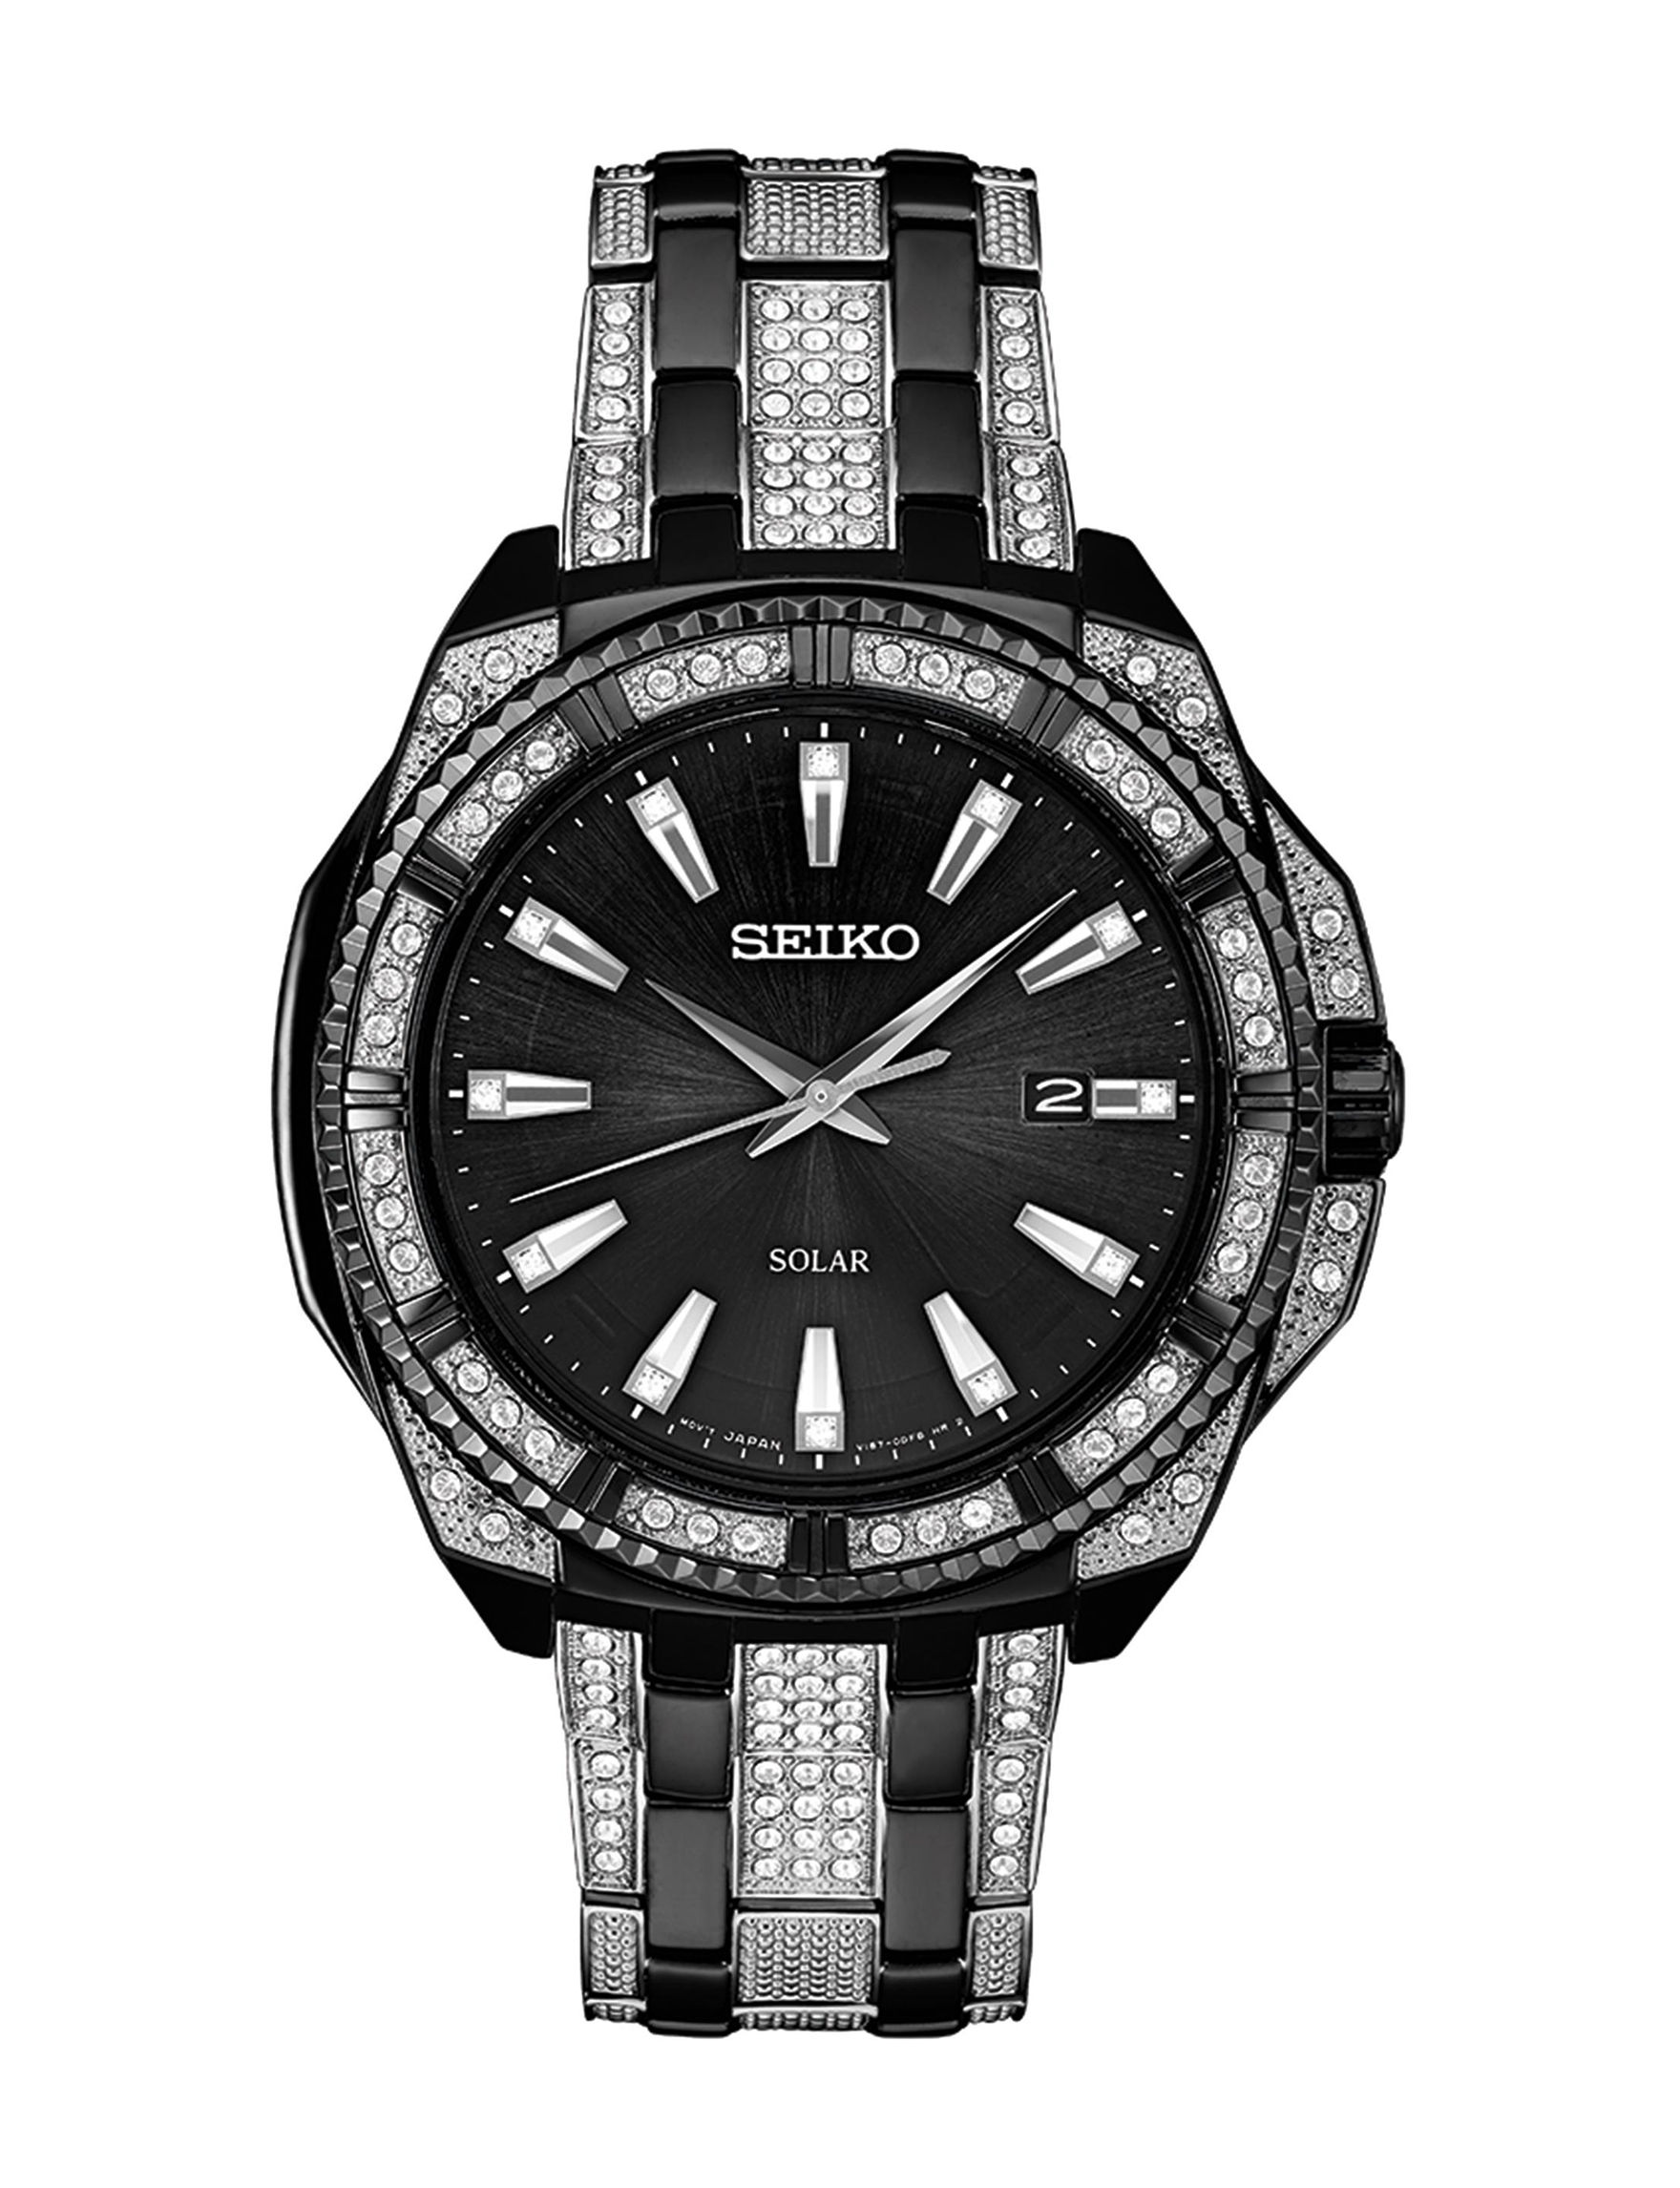 Seiko Silver / Black Fashion Watches Accessories